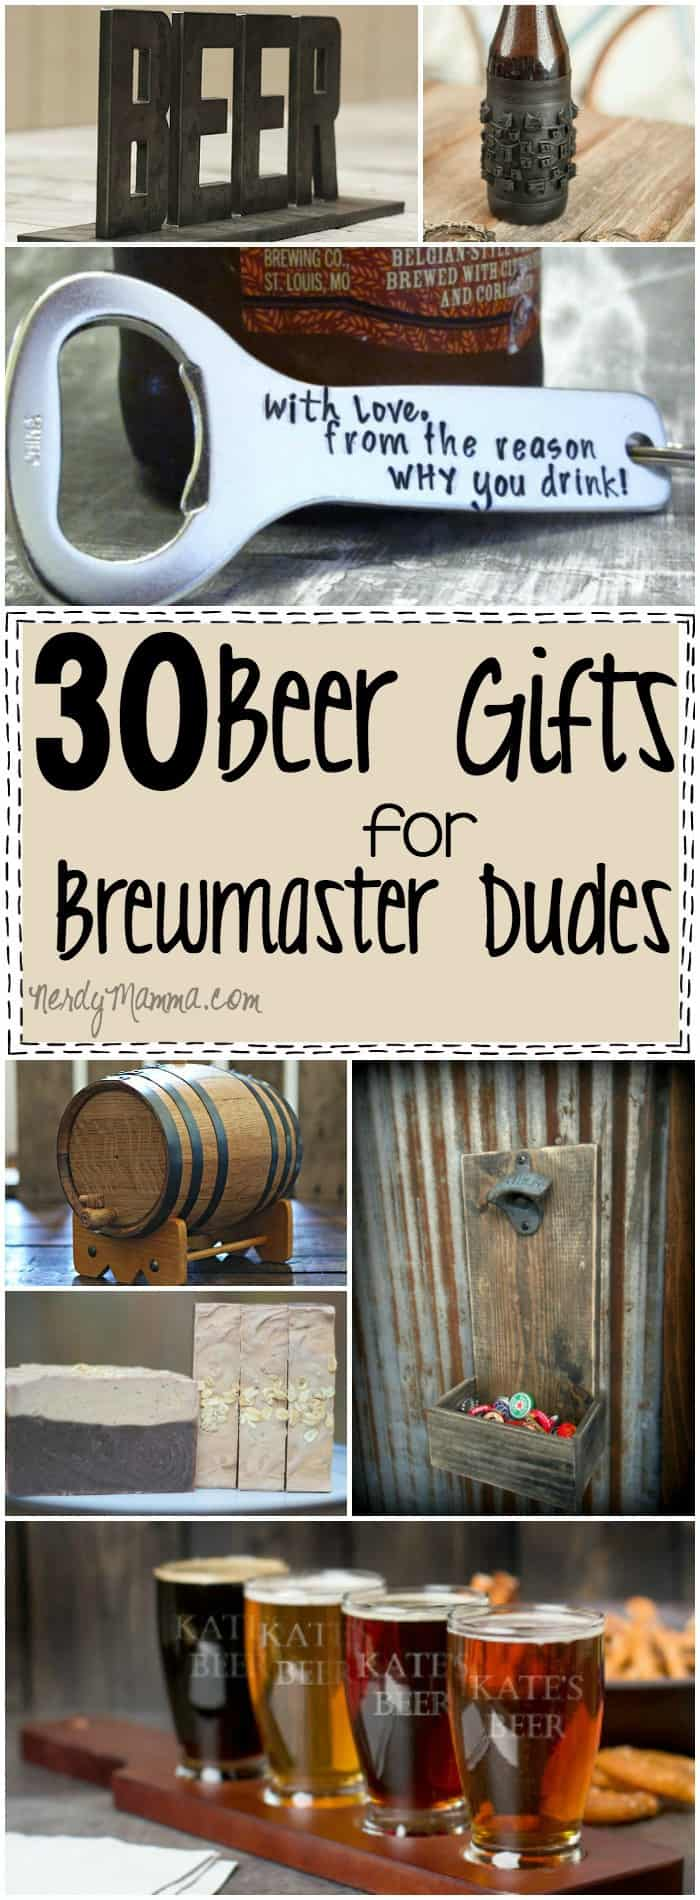 This is the ultimate list of awesome Father's Day gifts--or just gifts for dudes that really like beer anytime. These 30 Beer Gifts for Brewmaster-Dudes are truly the very best cream-of-the-crop for dudes that just love beer. #nerdymamma #beer #brewmaster #gifts #giftlist #giftguide #beergift #beergiftguide #fathersday #fatherday #dad #father #father'sday #fathersdaygifts #father'sdaygifts #fatherdaygifts #fatherdaygift #fatherdaygiftguide #father'sdaygiftguide